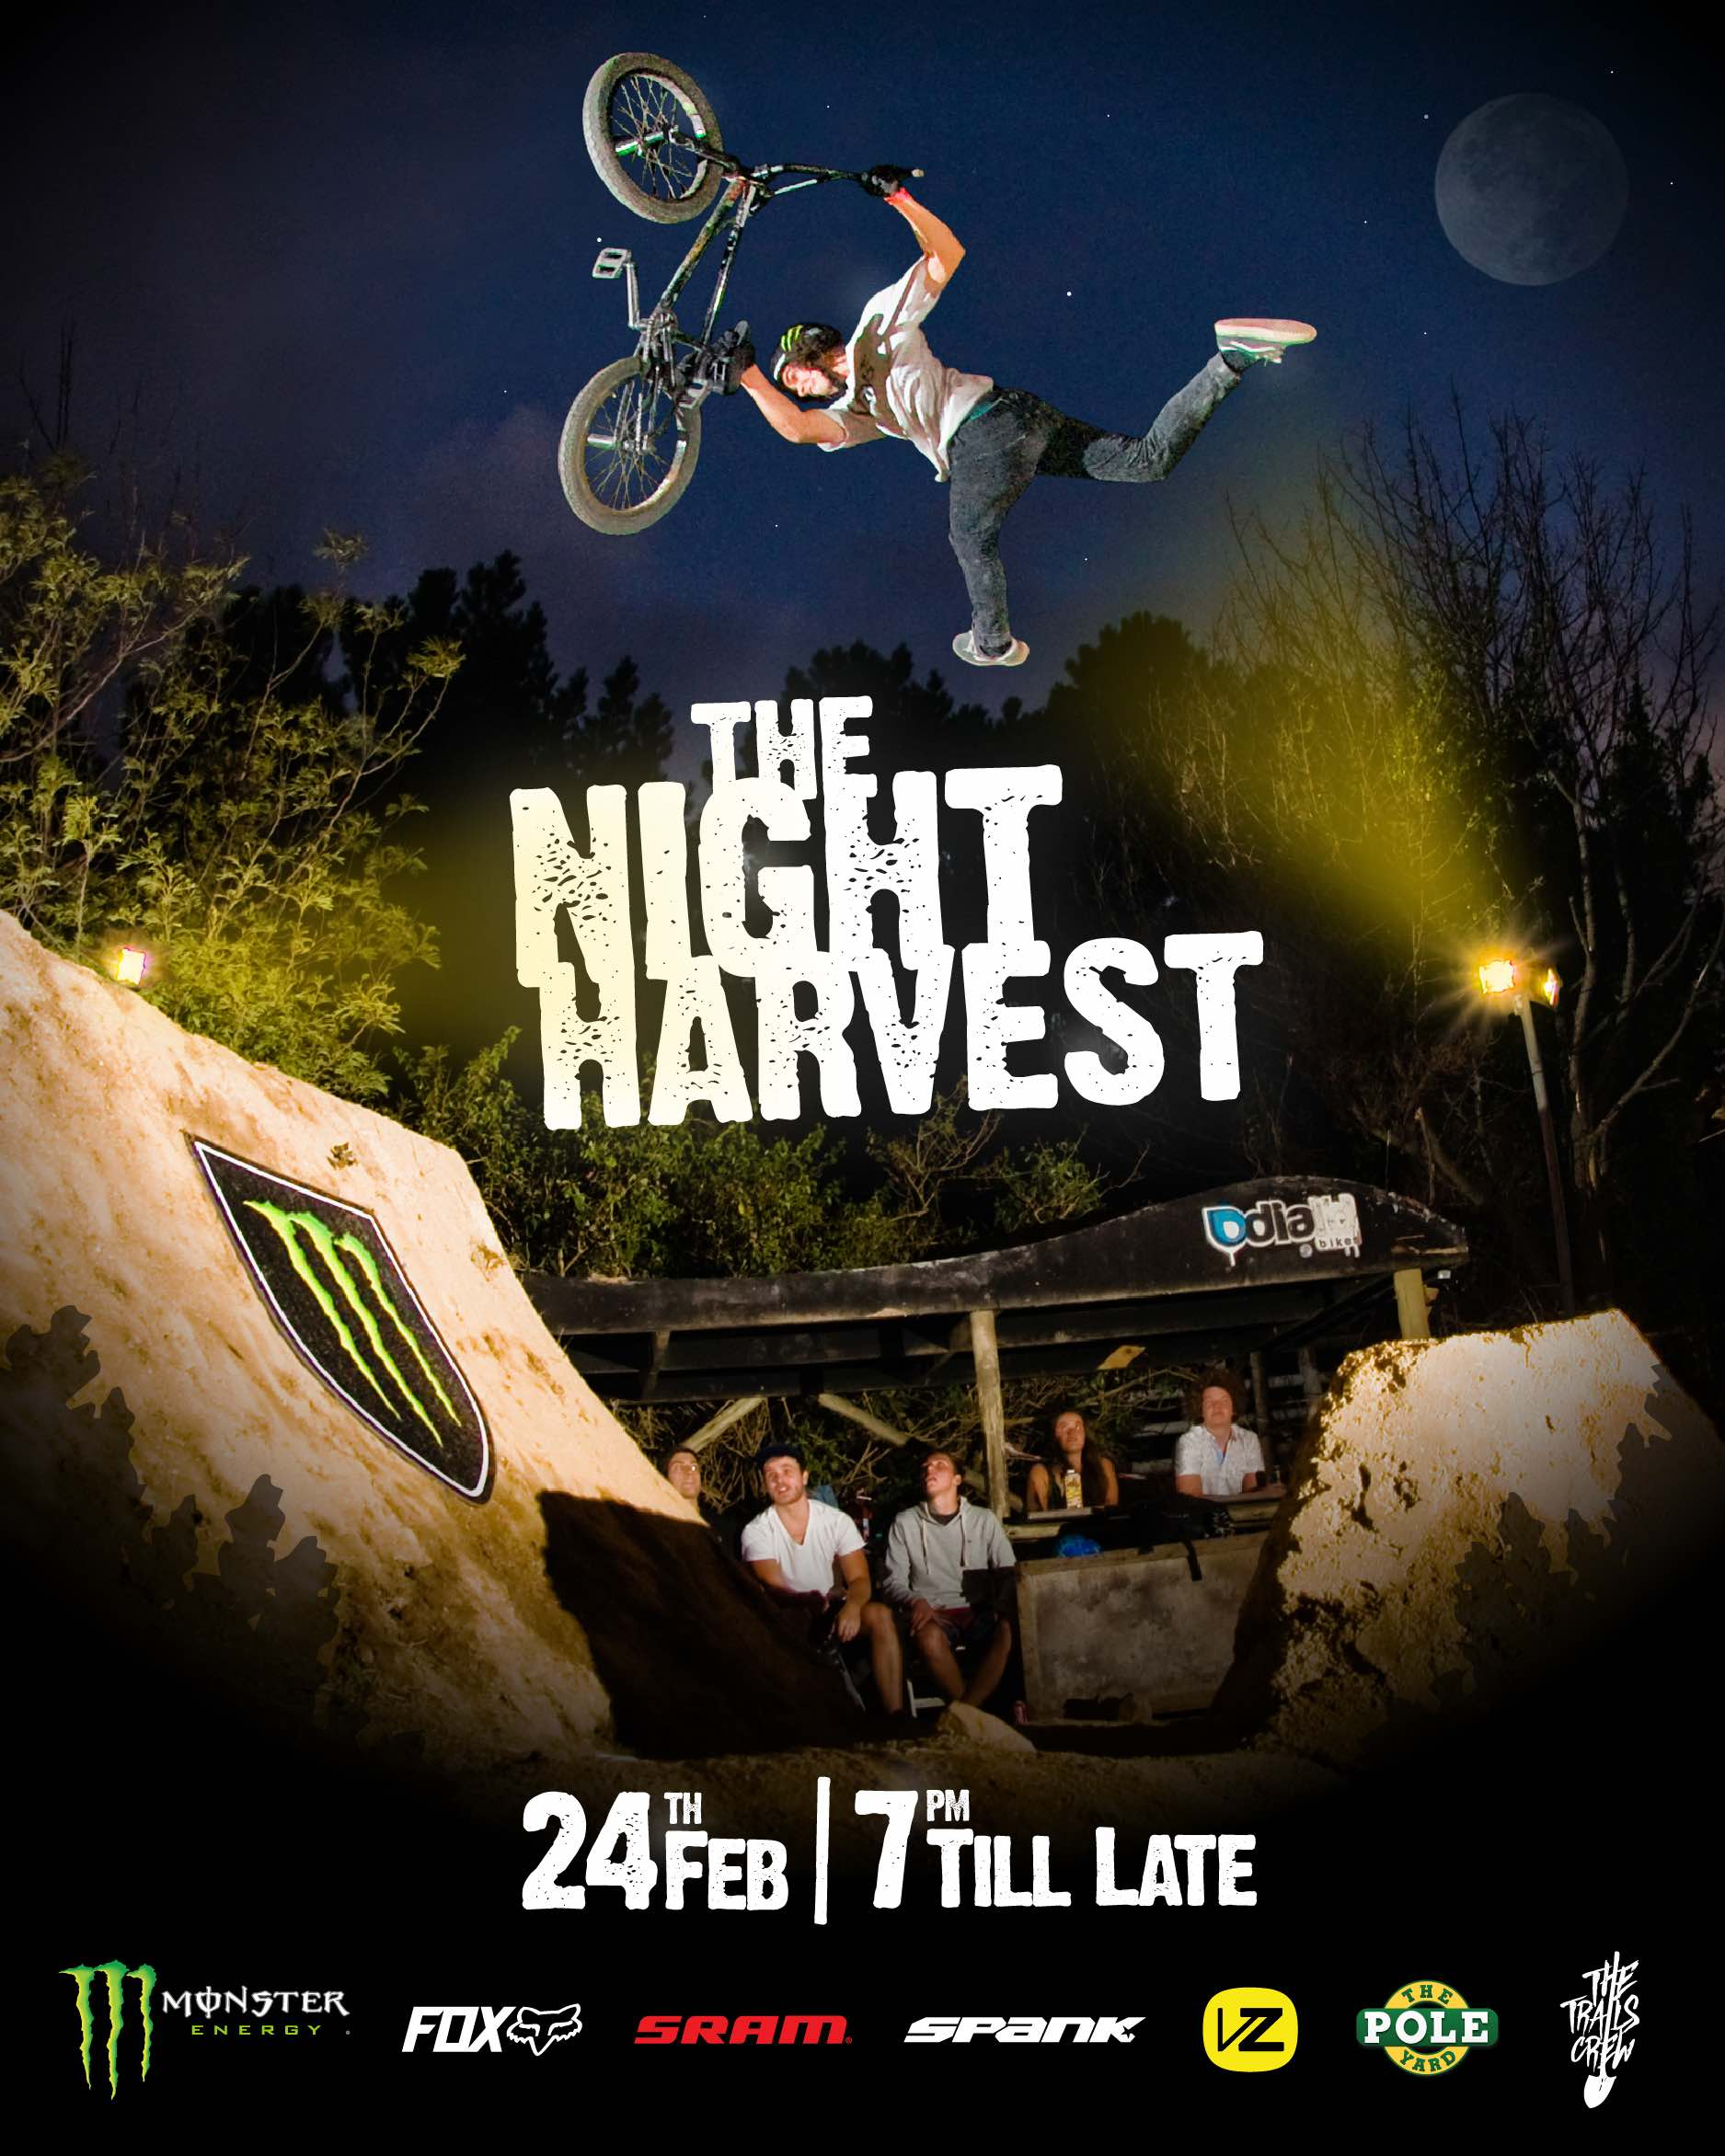 The Night Harvest is back see ing the world's best MTB and BMX dirt riders back in South Africa to compete